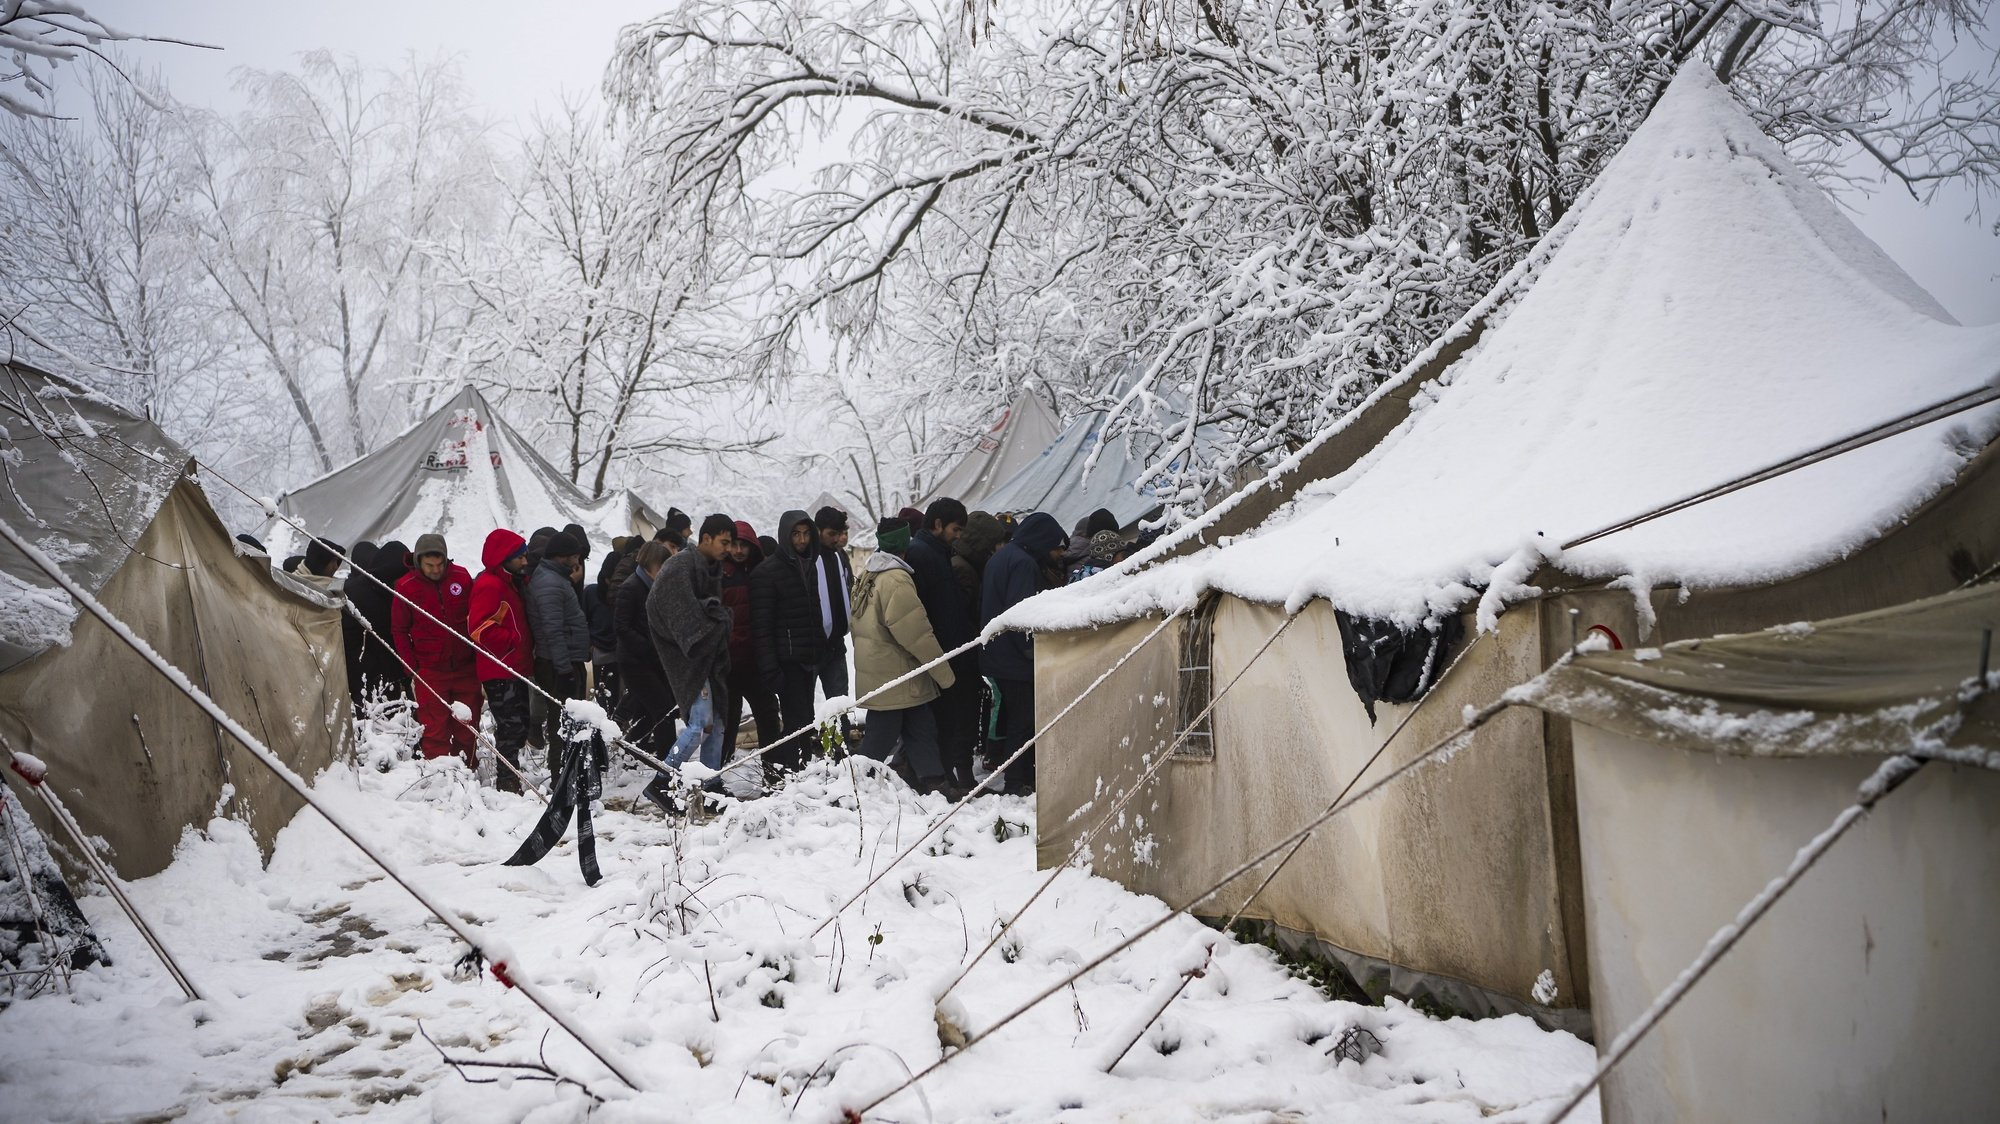 epa08041075 Migrants stand outside from tent during a winter day covered by snow at the Vucjak refugee camp outside Bihac, northwestern Bosnia and Herzegovina, 03 December 2019. According to local media, hundreds of people remain at the camp even after International officials called for it to be shut down.  EPA/JEAN-CHRISTOPHE BOTT